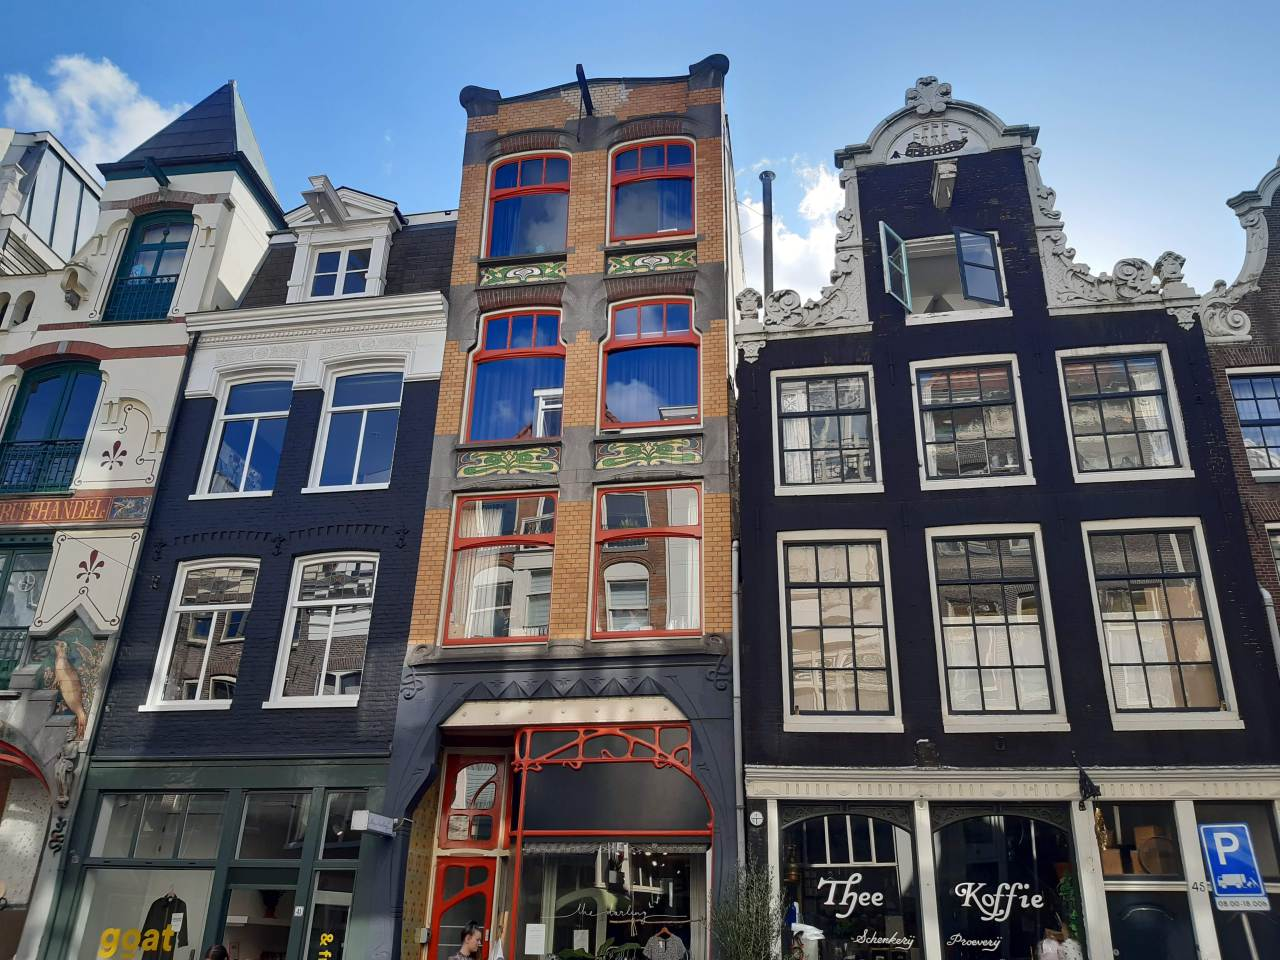 Abroad in Amsterdam: How to have a 'gezellig' year in the Netherlands